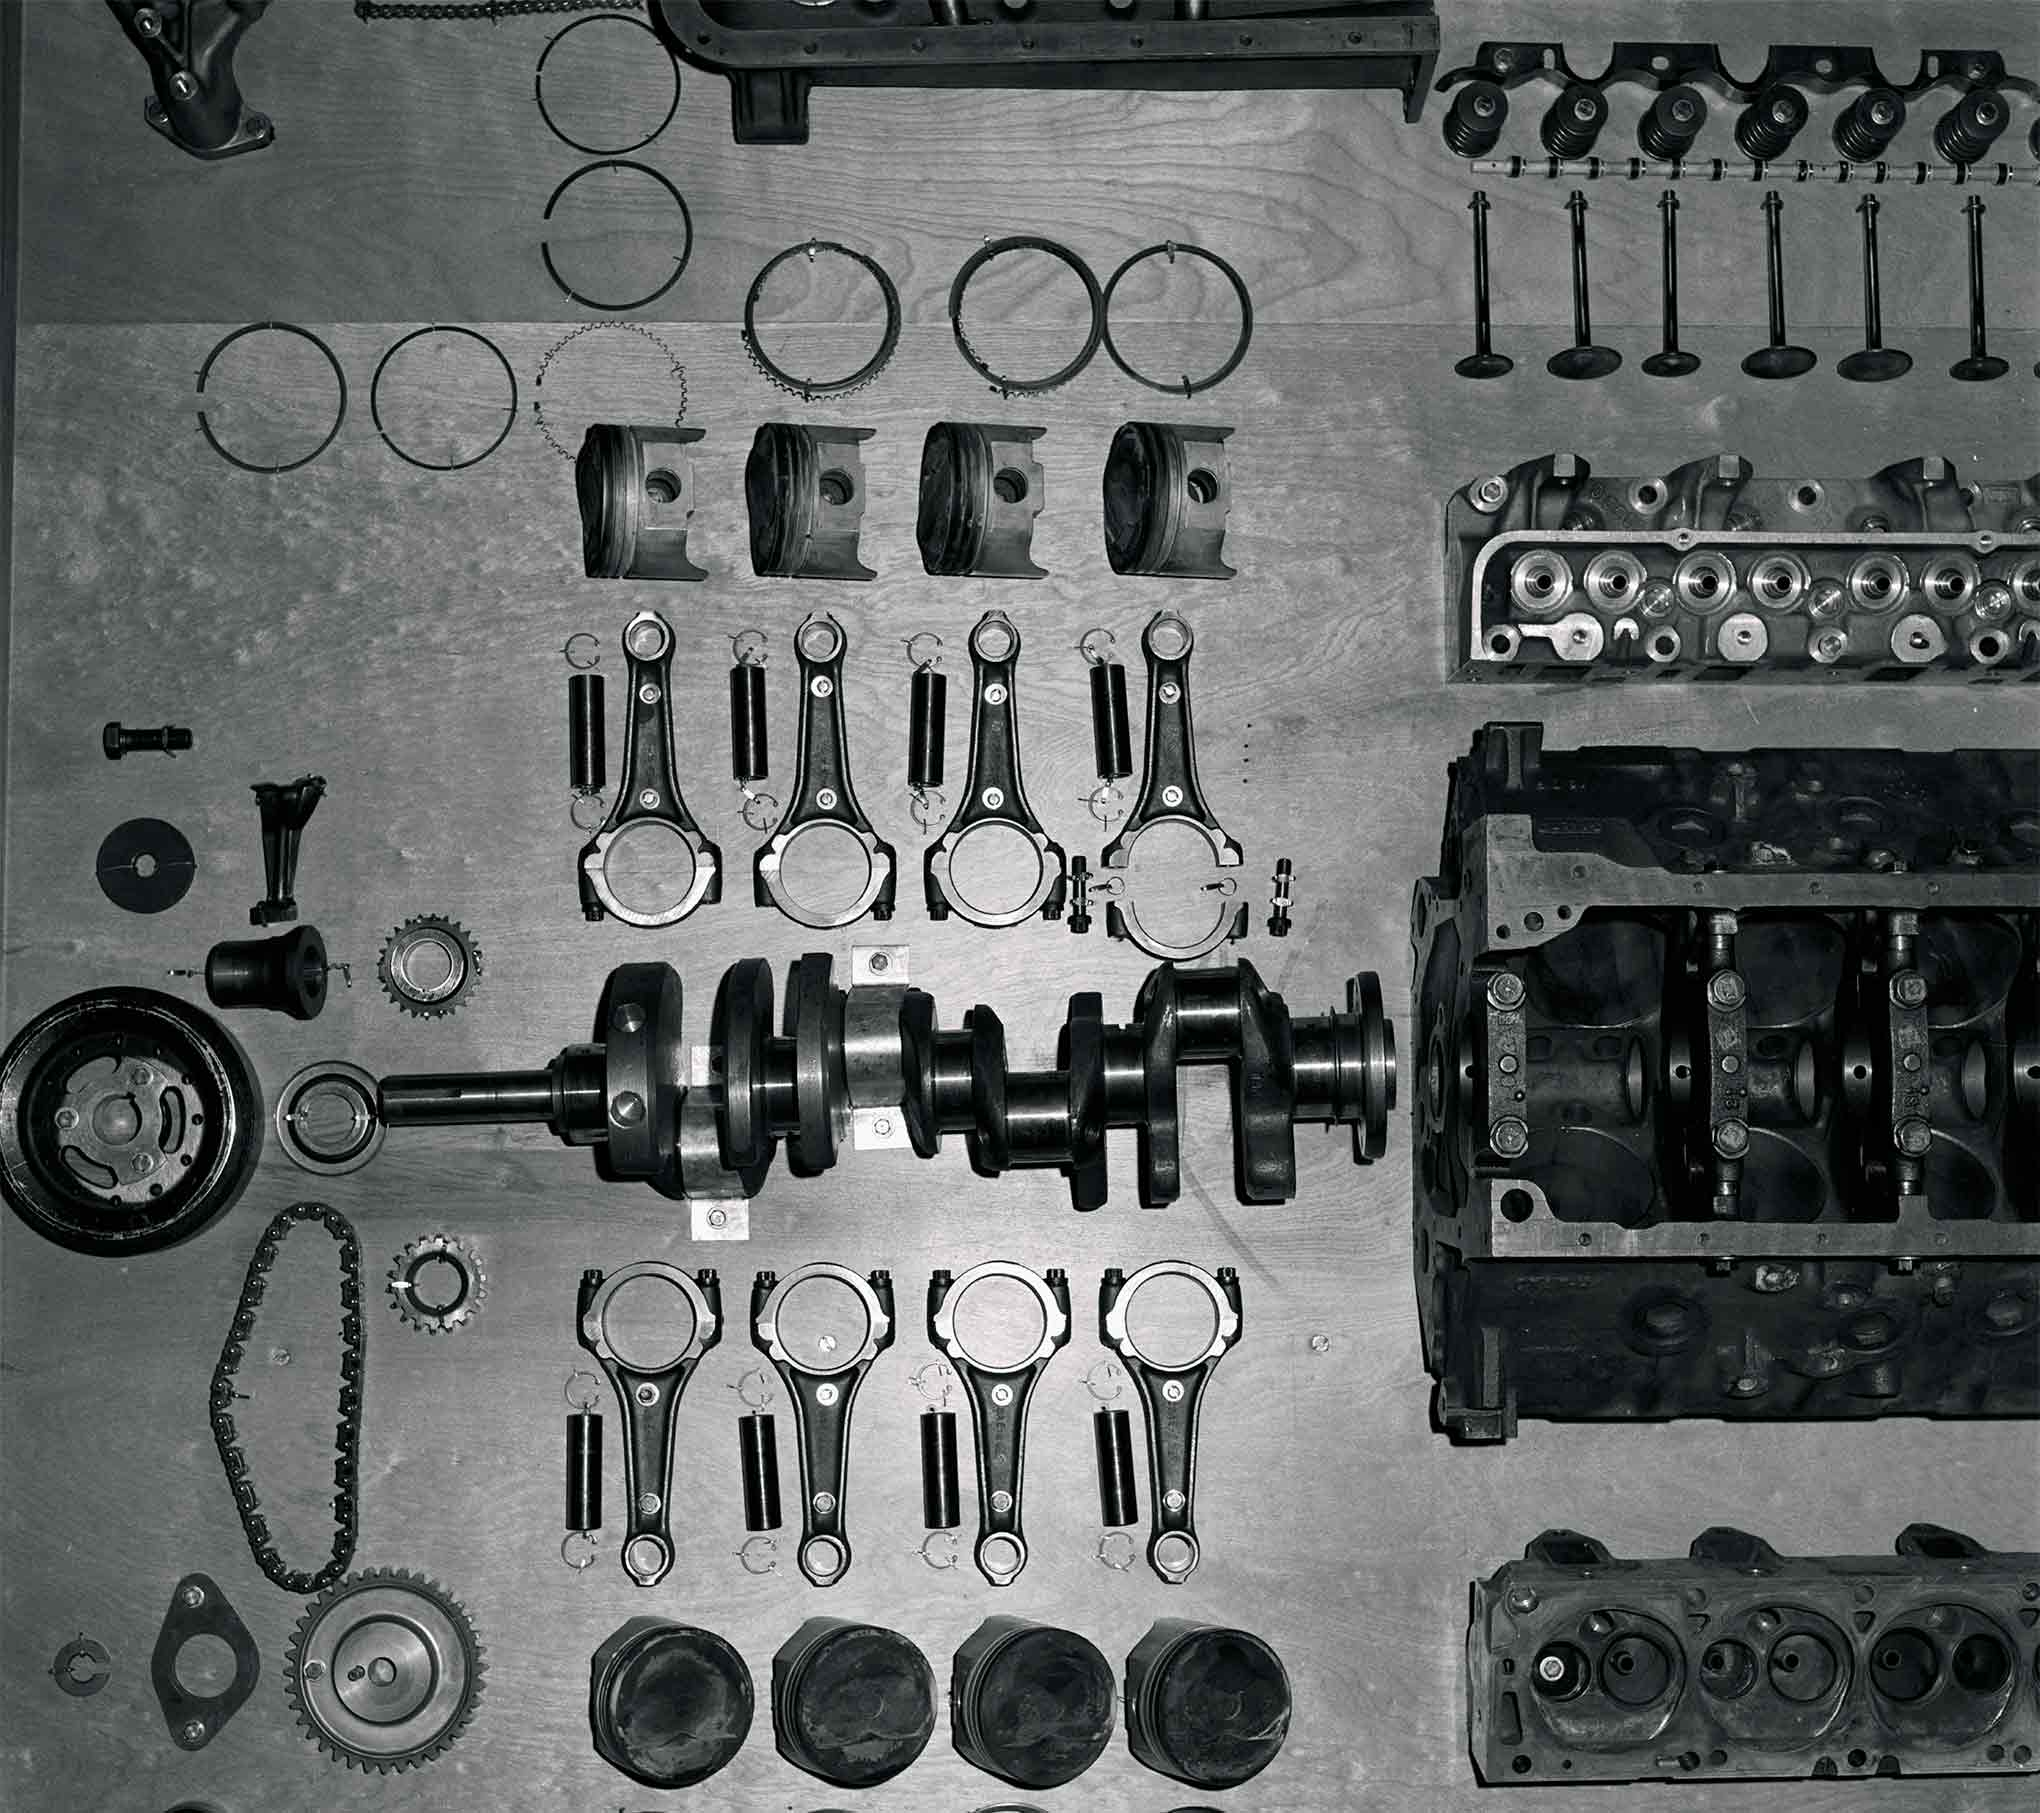 "Every part of the engine was exposed in this exploded display. The chain and sprockets to the left attach to the crank and spins two scavenge pumps for the dry-sump system. ""Le Mans"" forged-steel connecting rods featured stronger large end and 7/16-inch cap screws. The ""Le Mans"" C5AZ-6303-C forged crankshaft accepts standard main bearing shells of production 427 engines. The rocker arms are a ball-stud design as opposed to a presumed roller rocker."